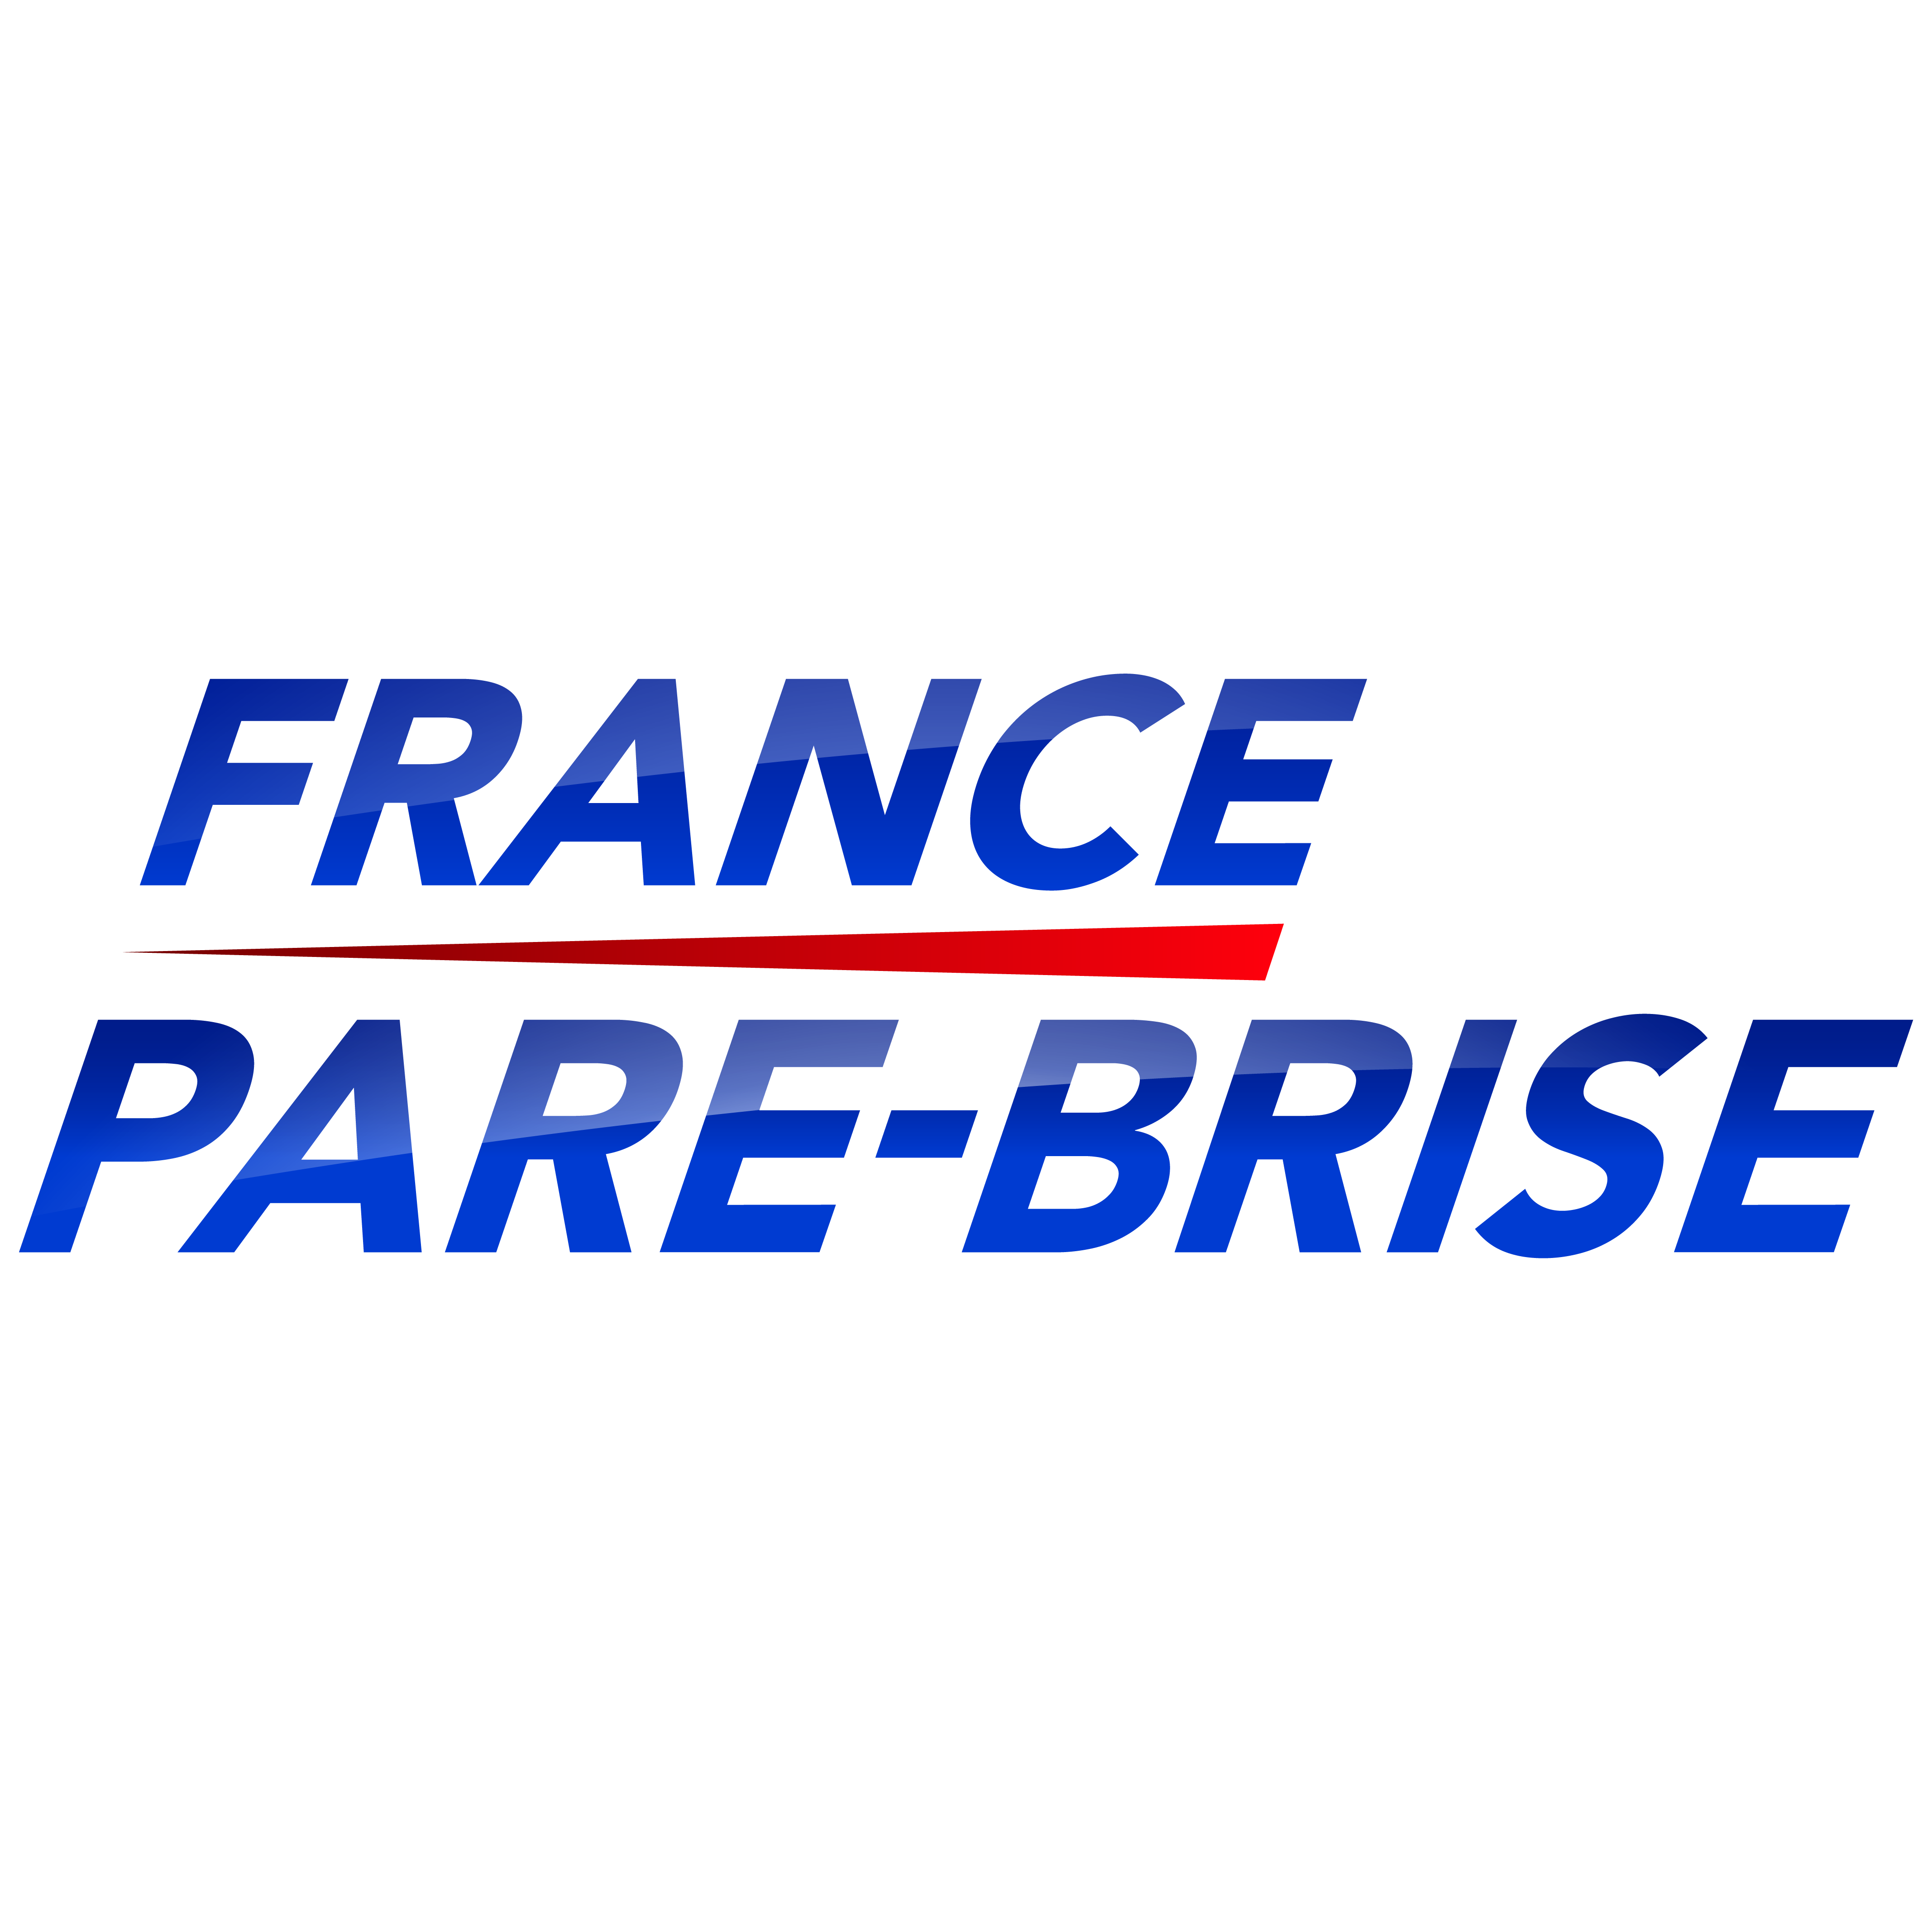 France Pare-Brise GRENOBLE vitrerie (pose), vitrier